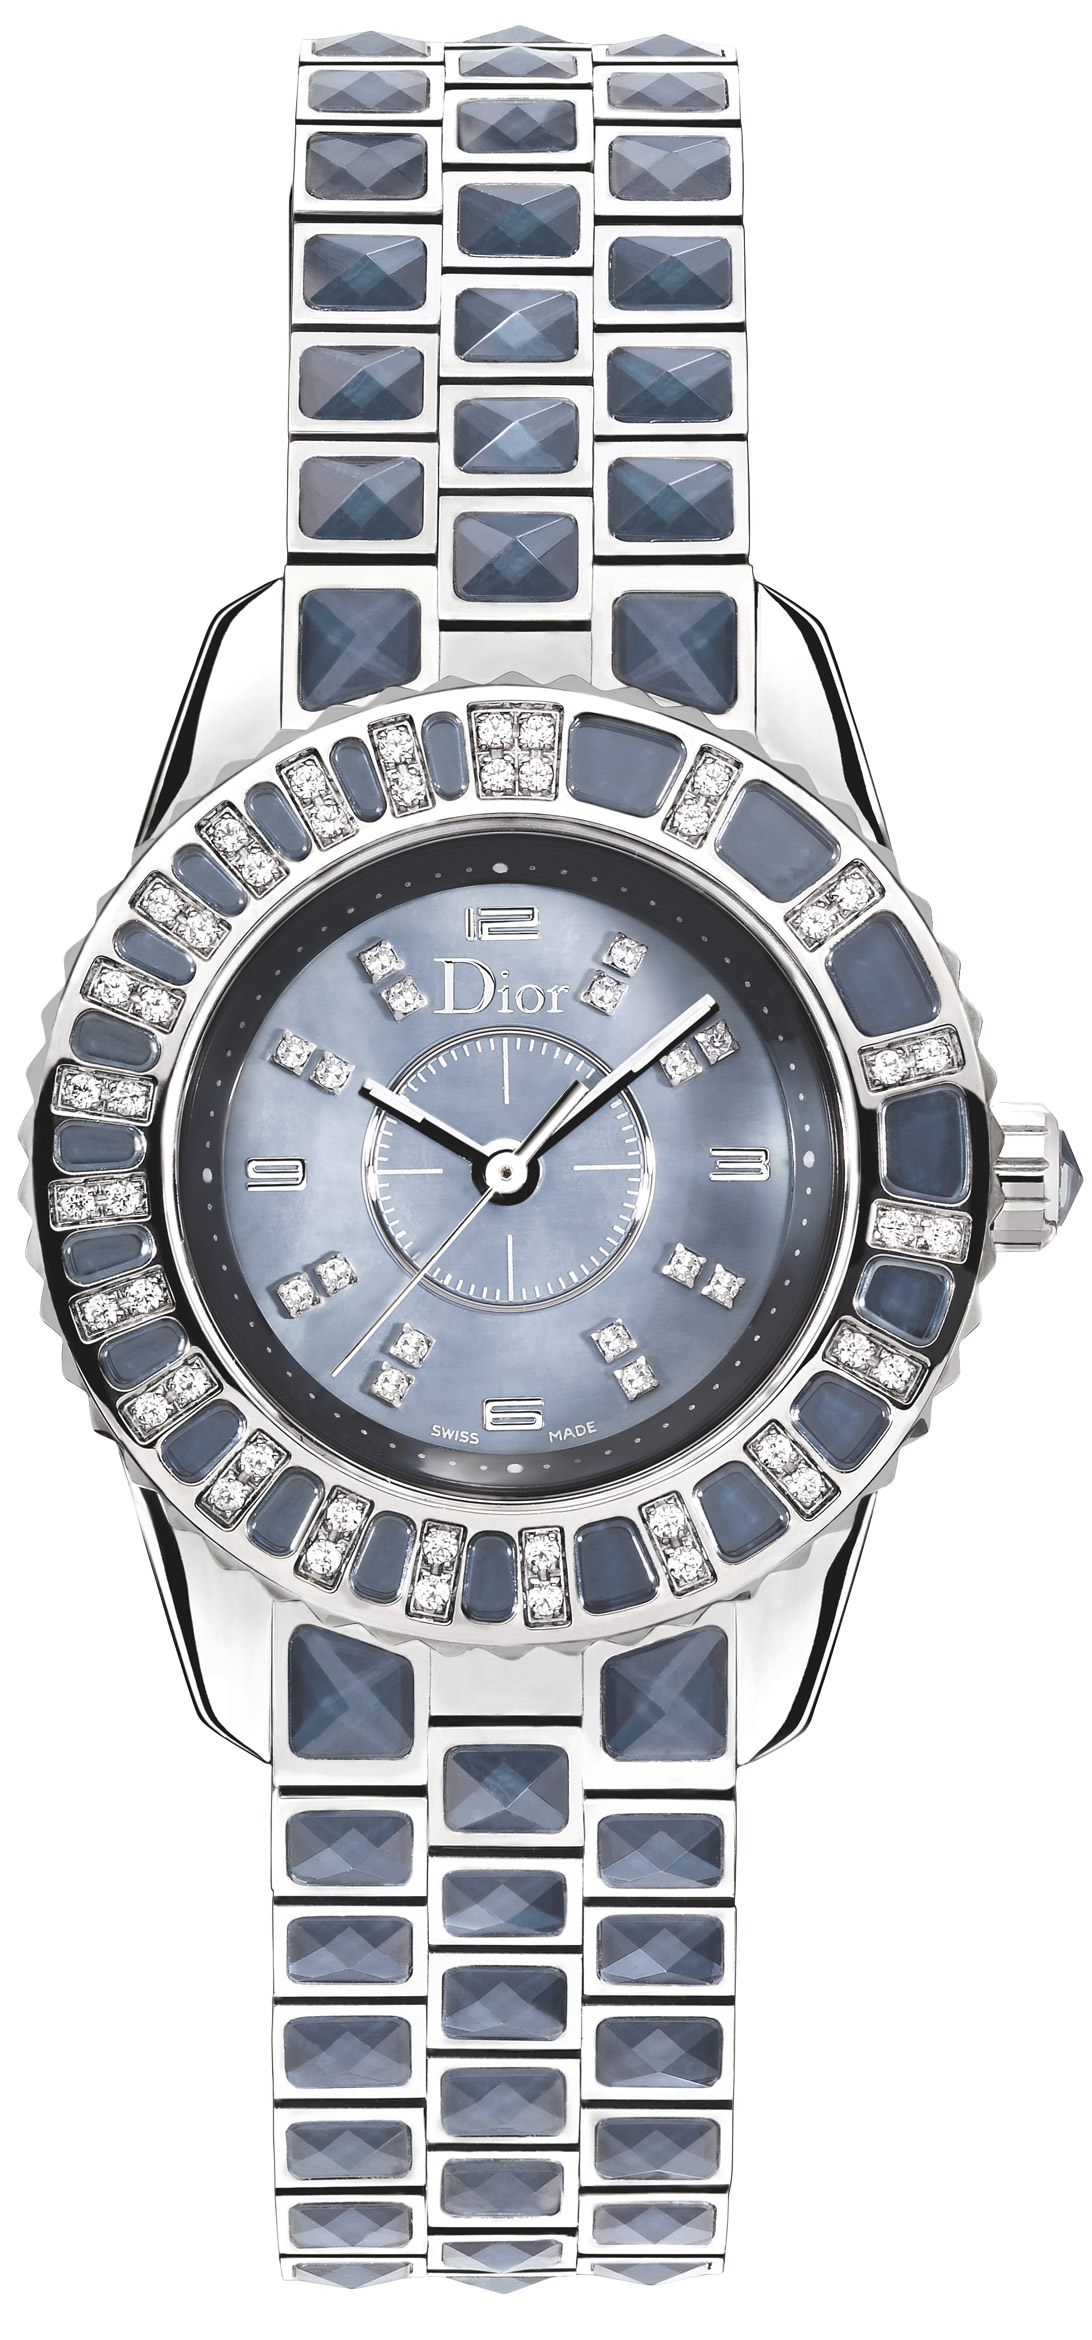 Christian dior christal ladies watch model cd11211cm001 for Christian dior watches